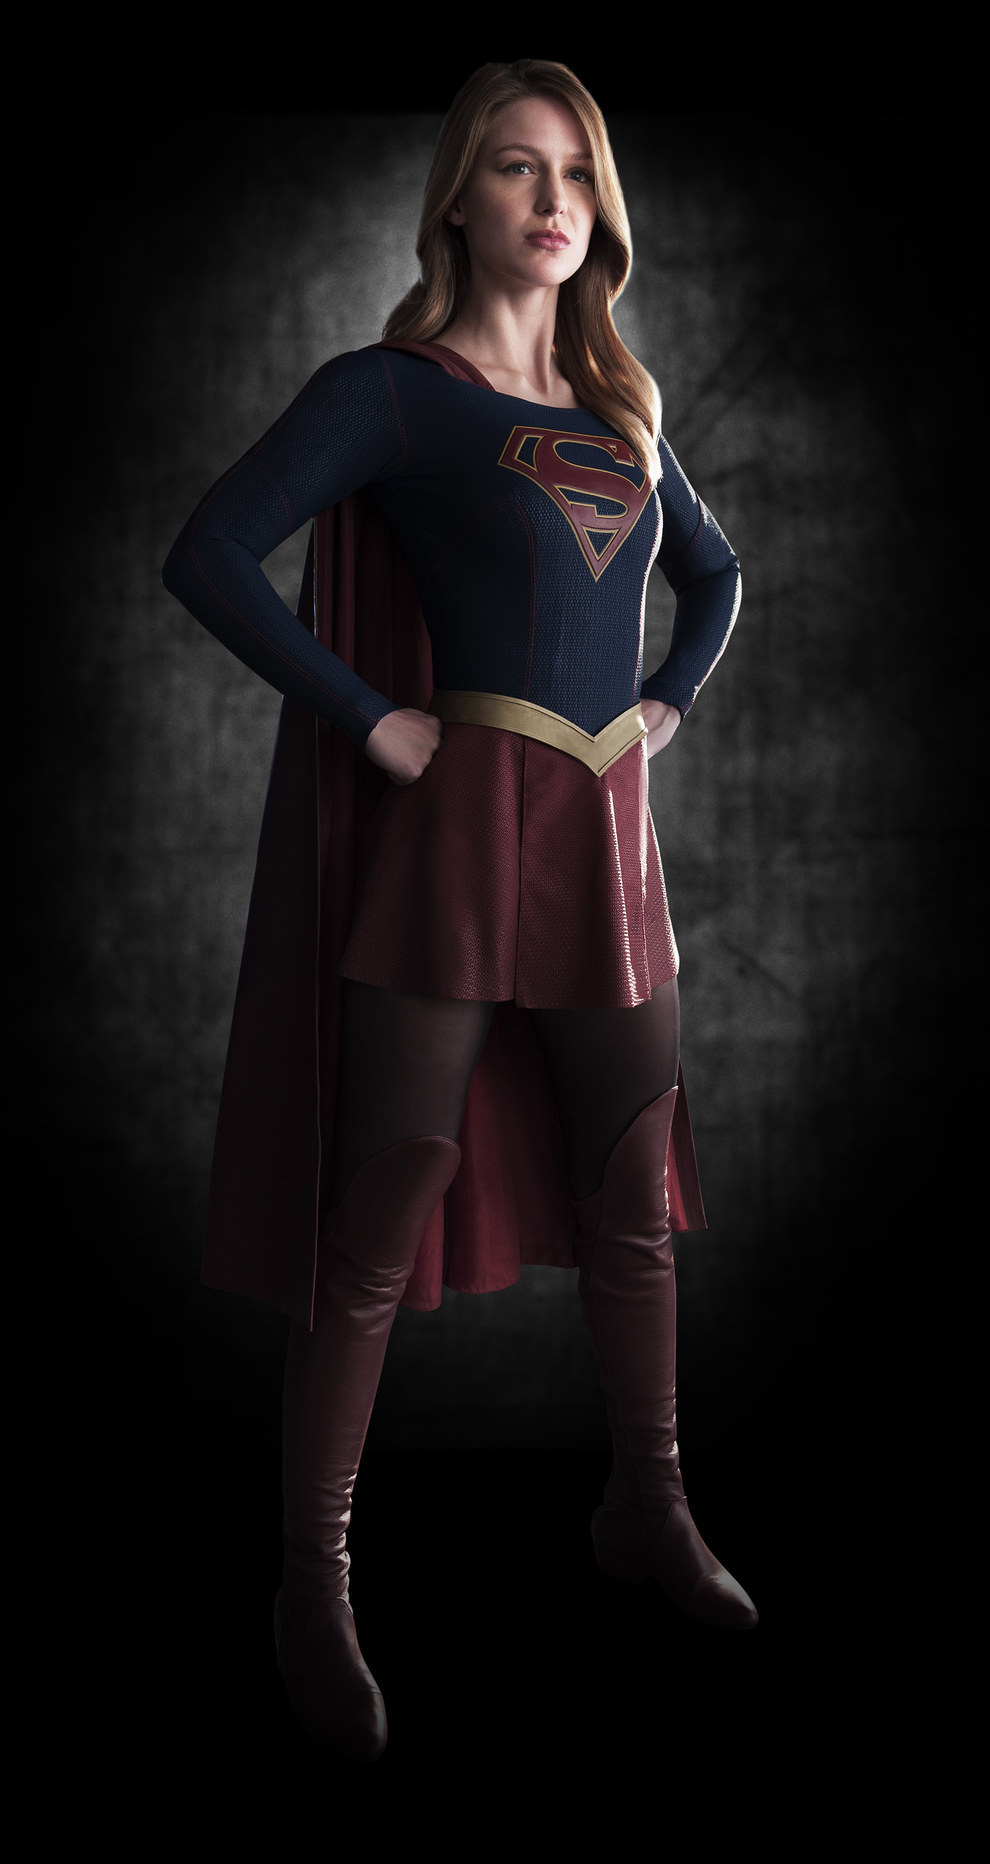 Melissa Benoist as Supergirl for CBS series.